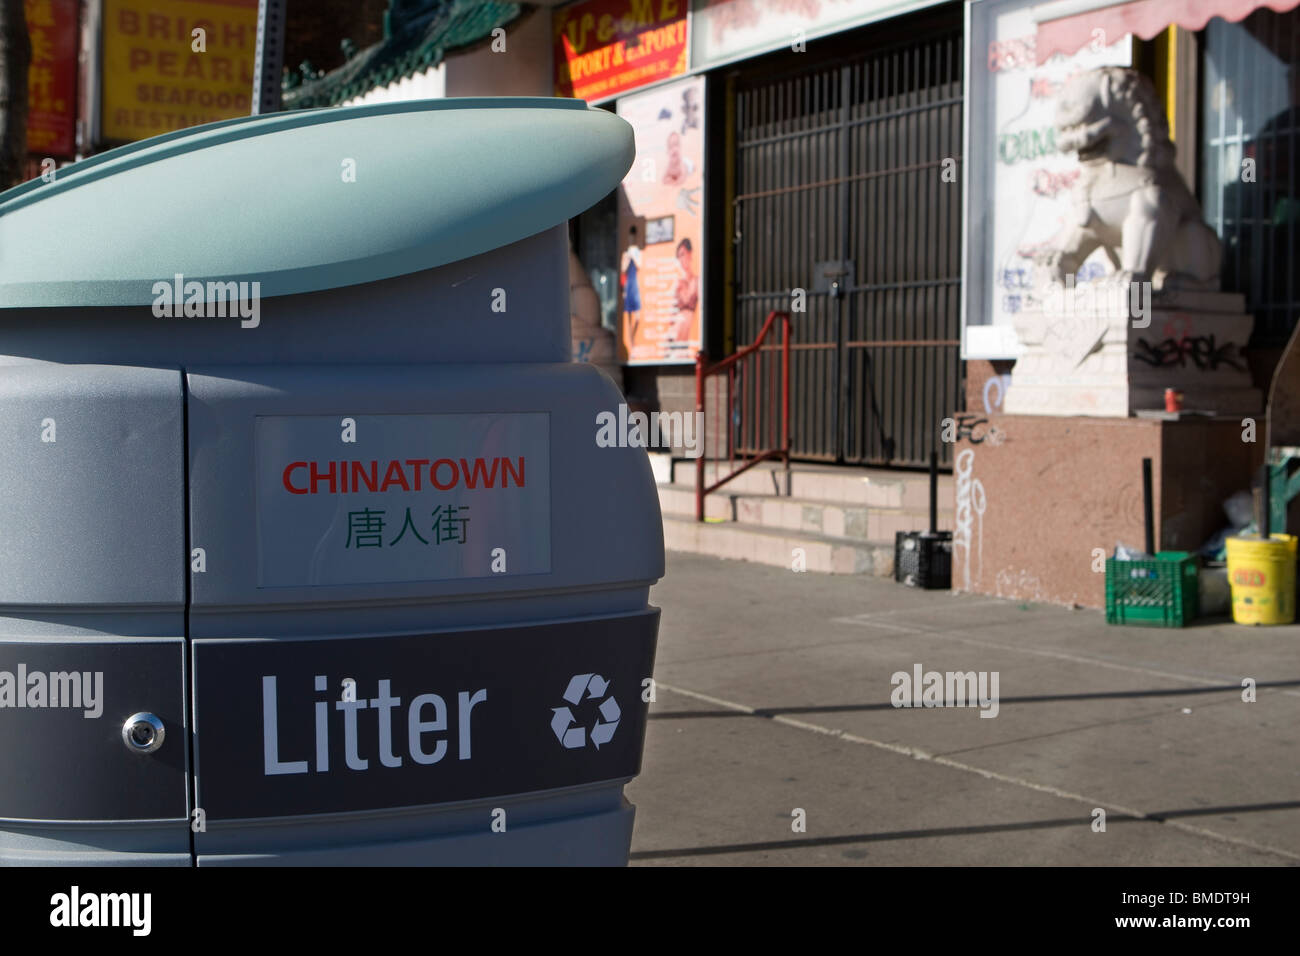 A trash can is seen in Toronto Chinatown - Stock Image